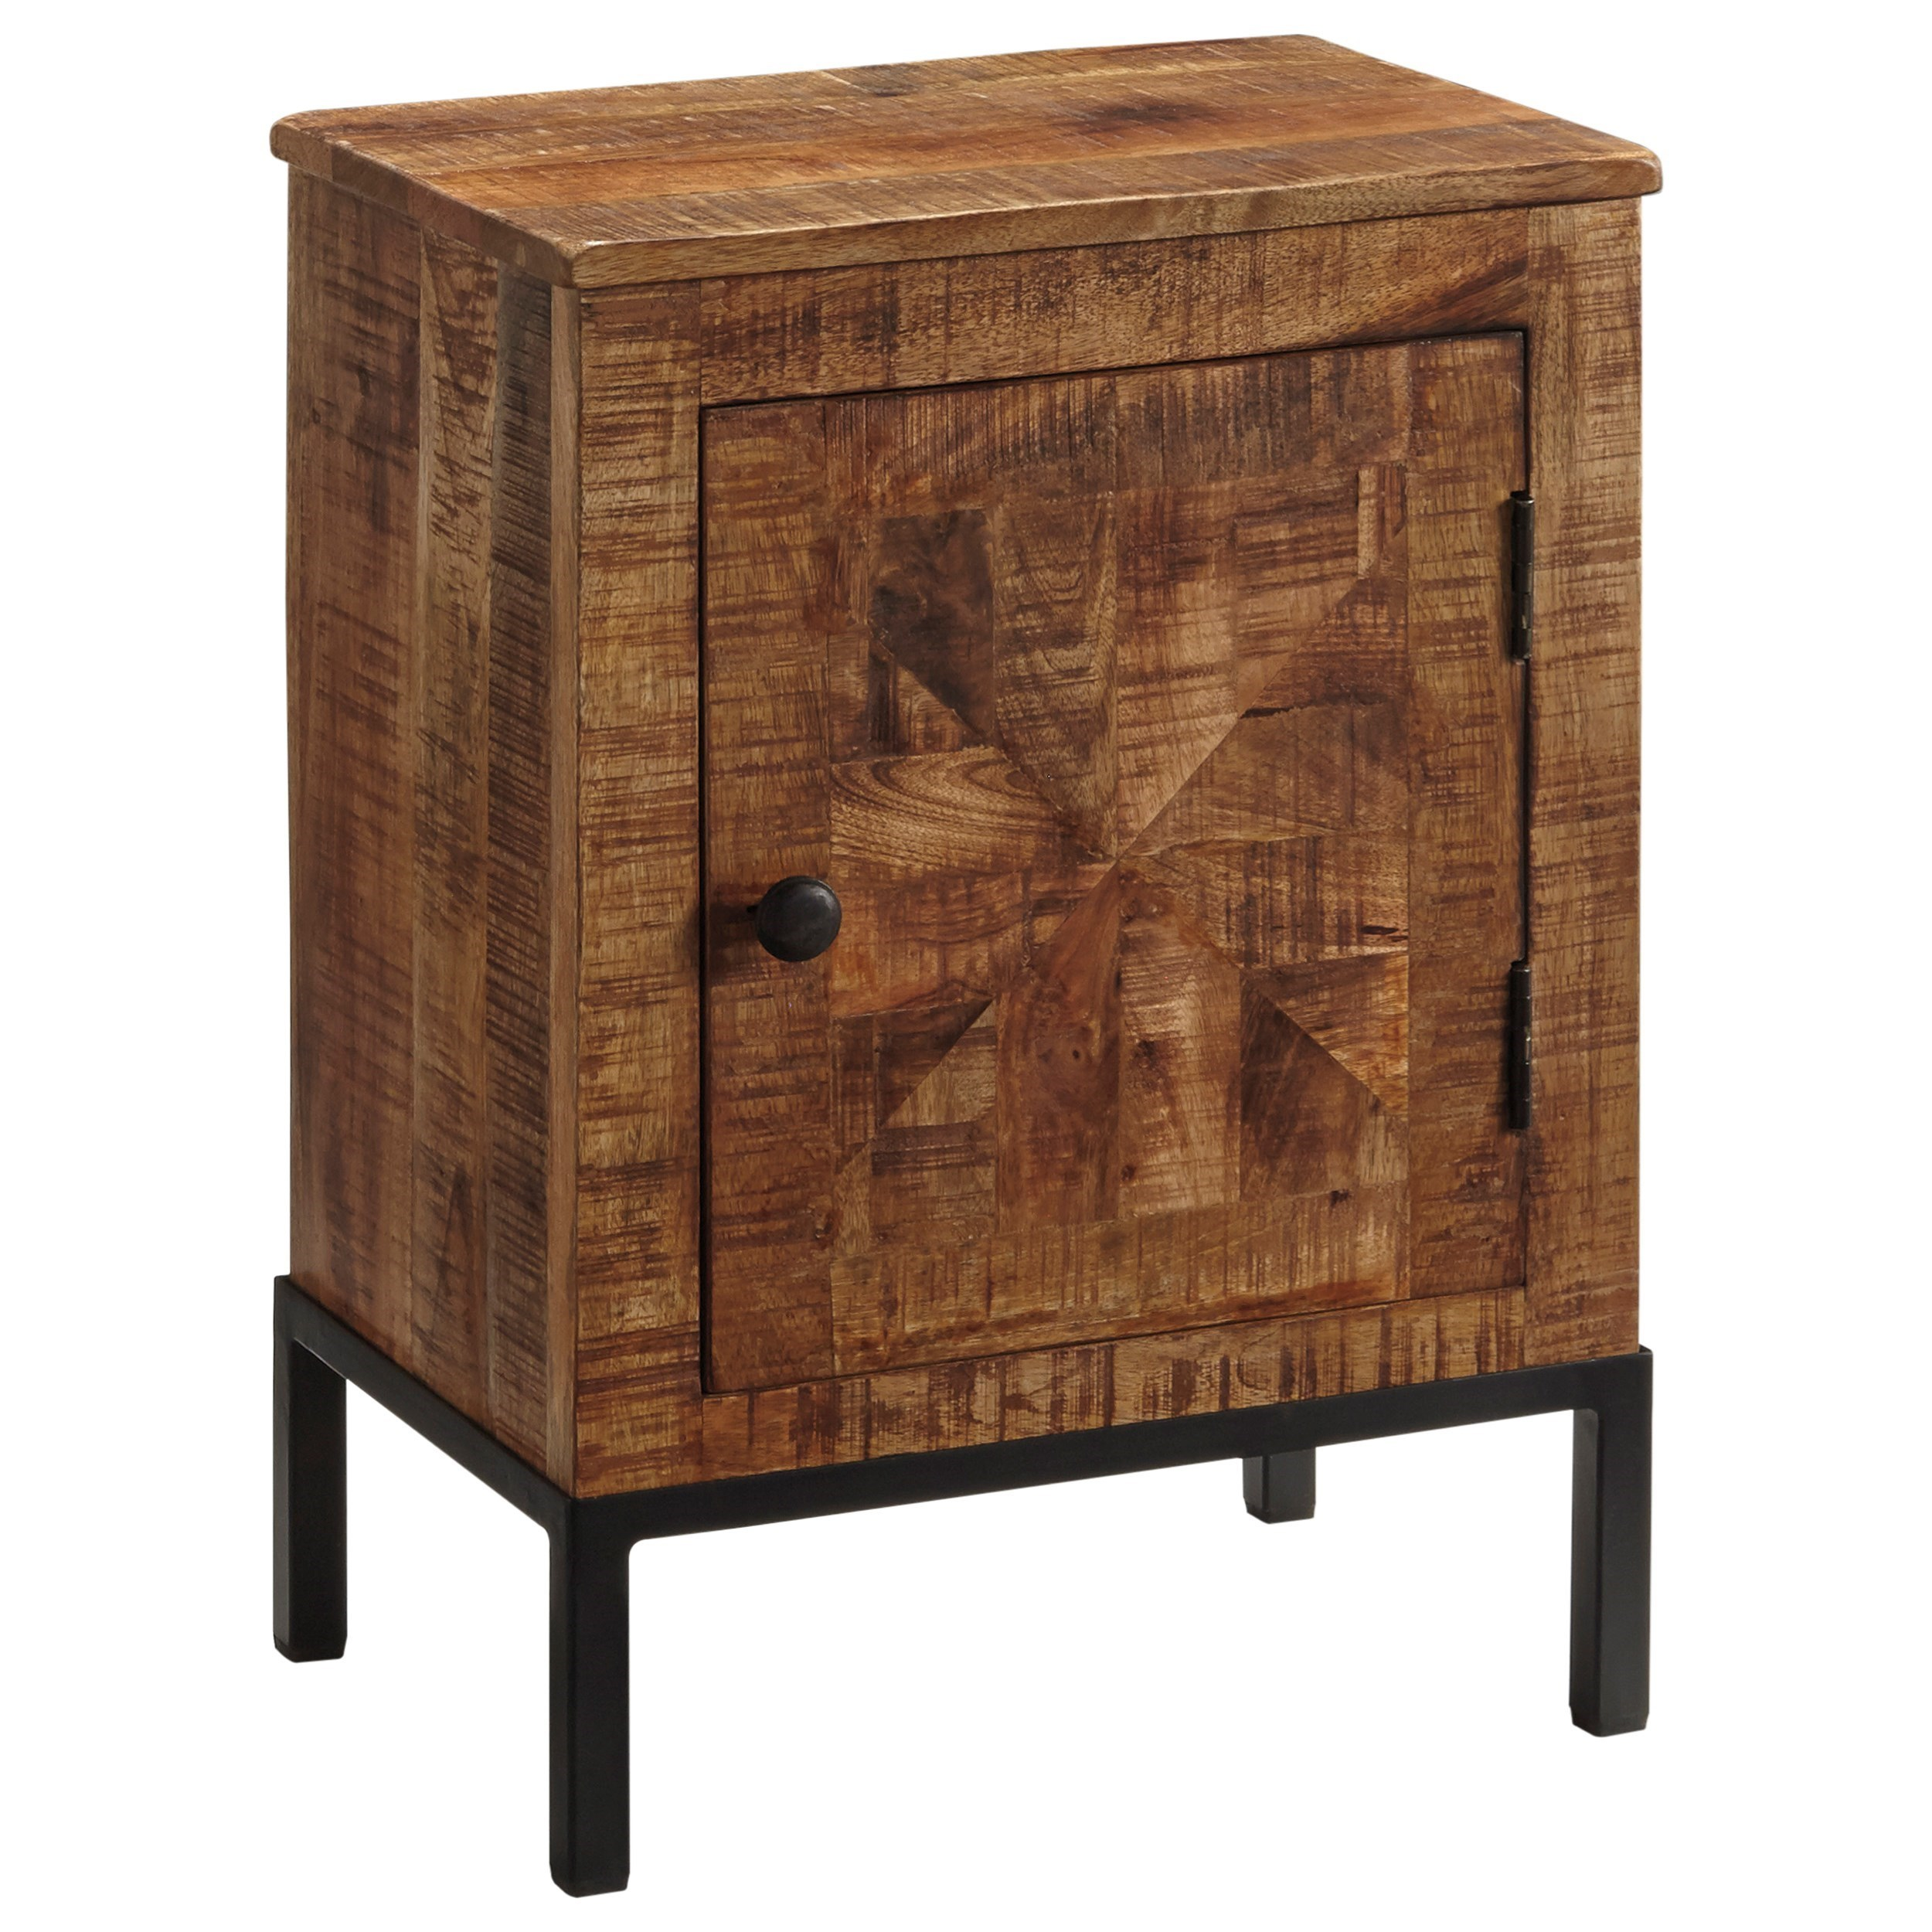 Signature Design by Ashley Charlowe Door Night Stand - Item Number: B013-991